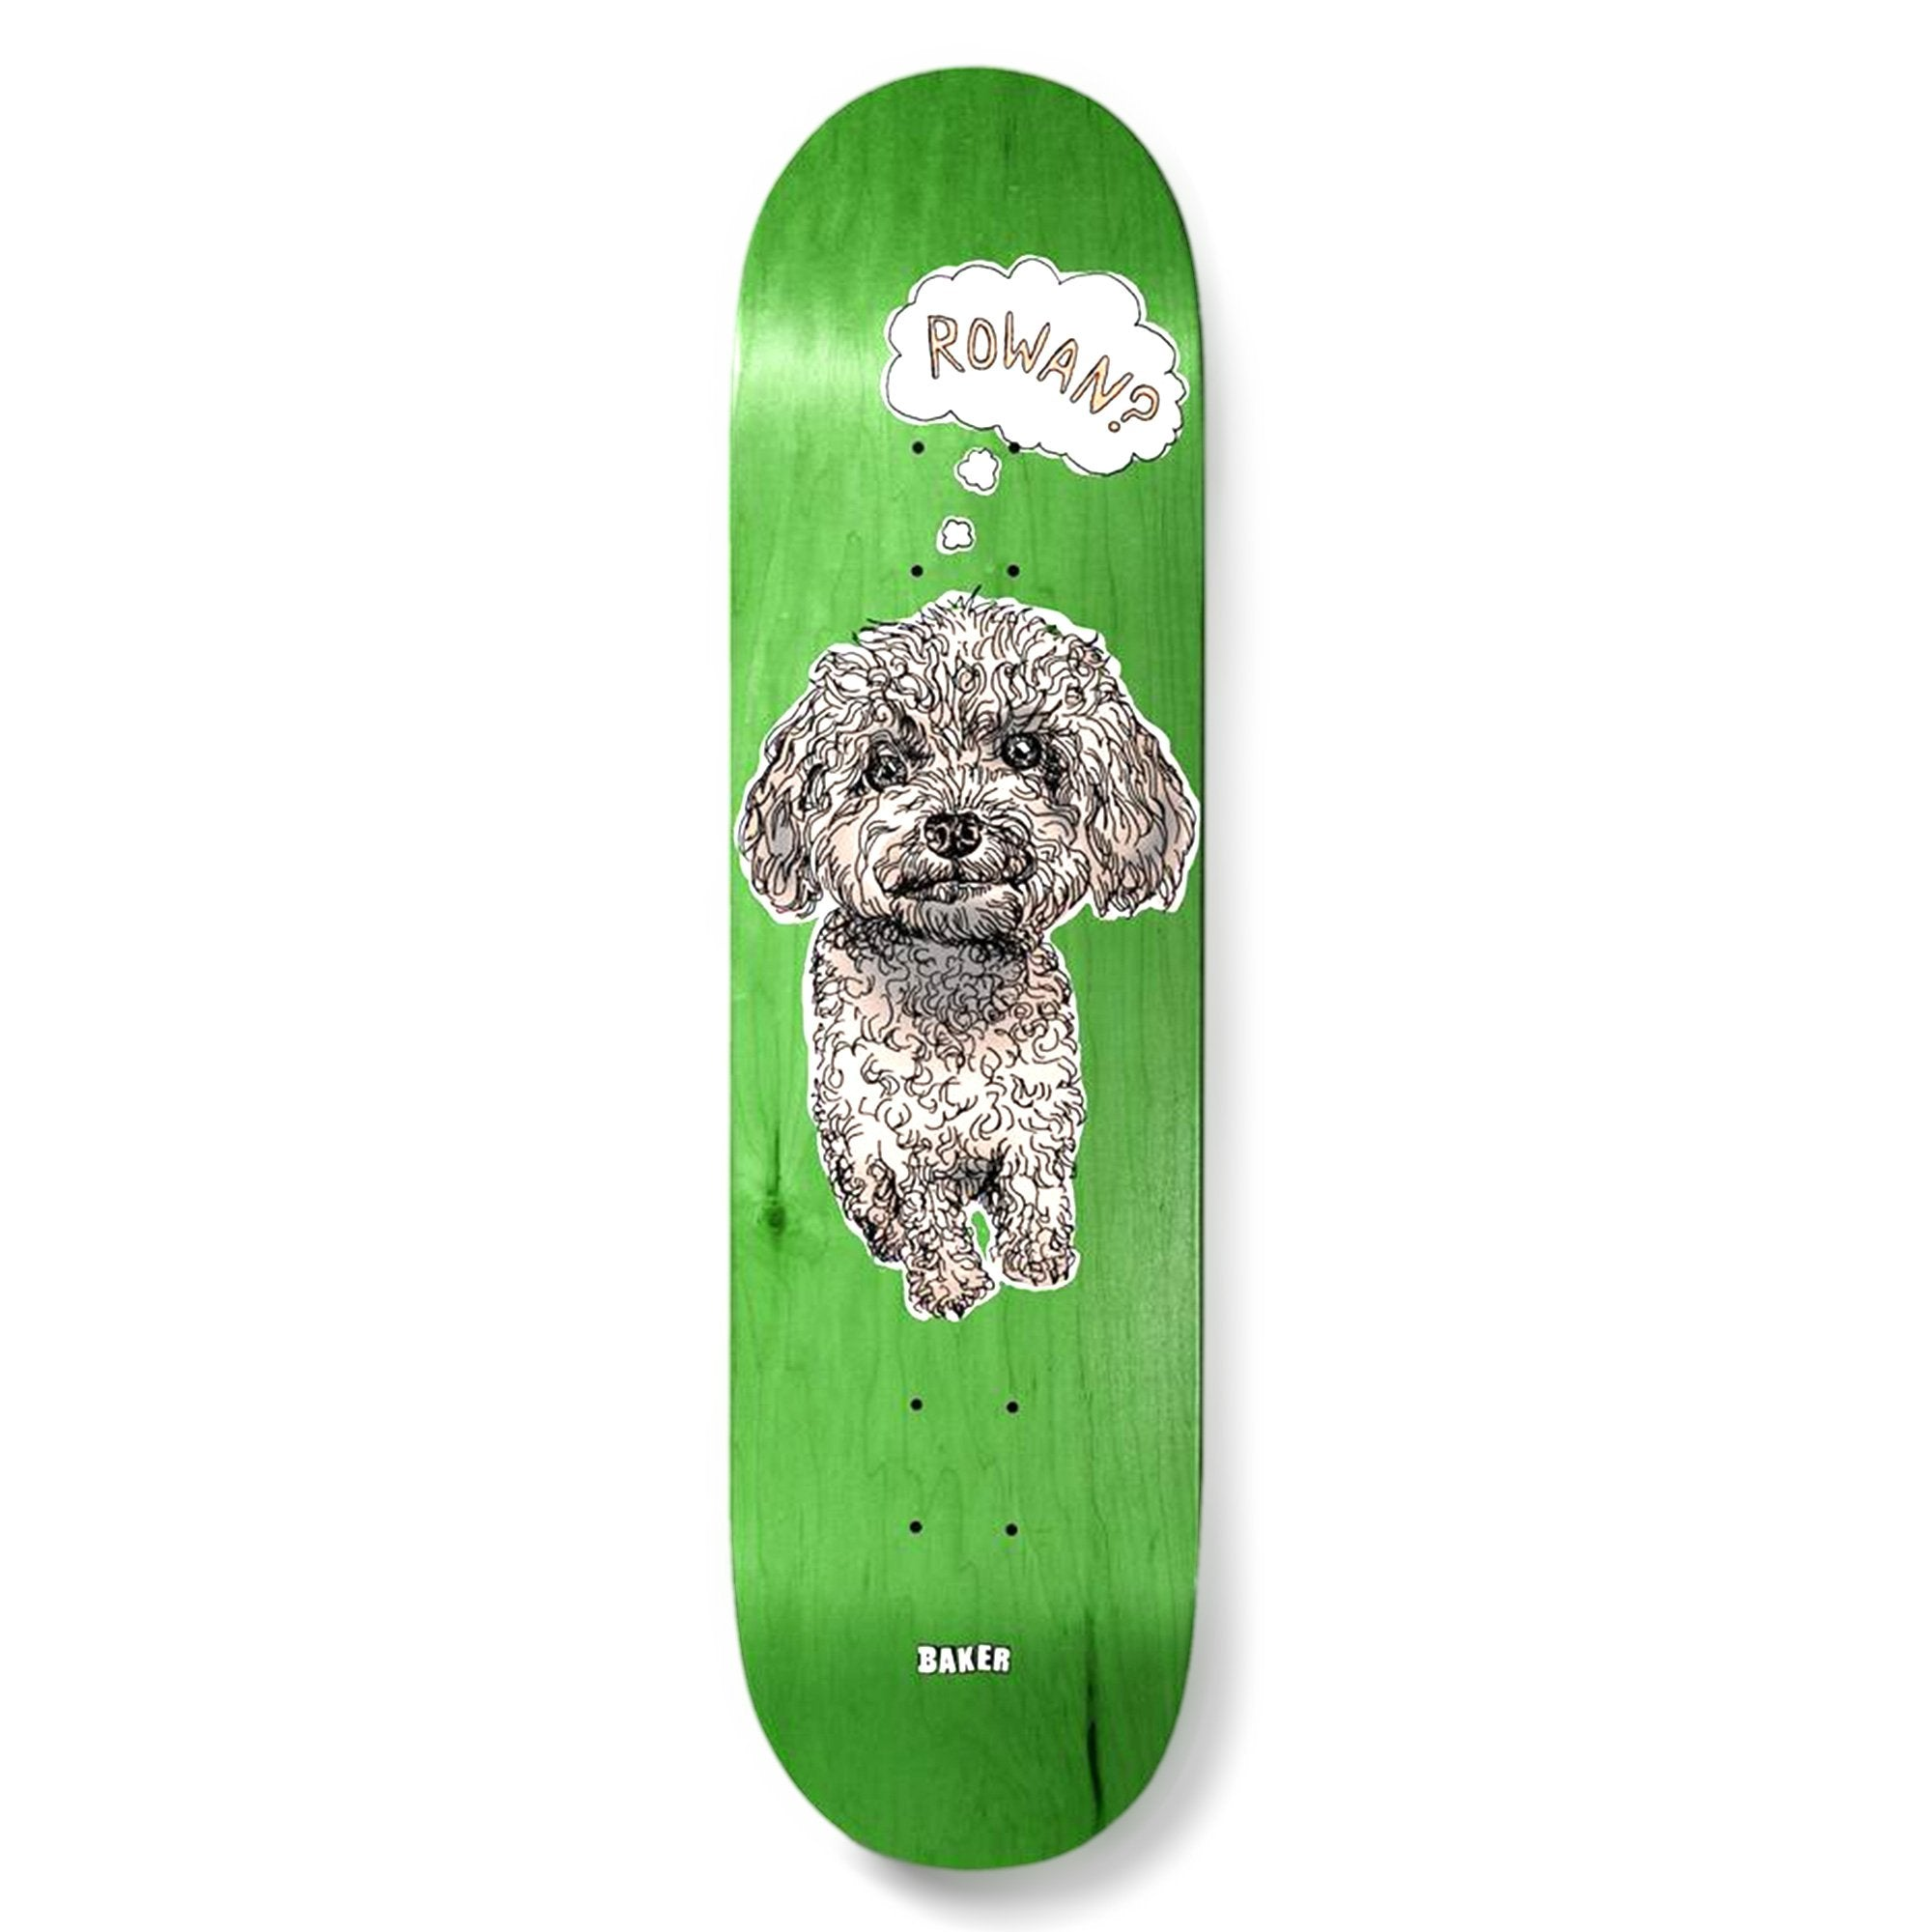 Baker Animals Deck